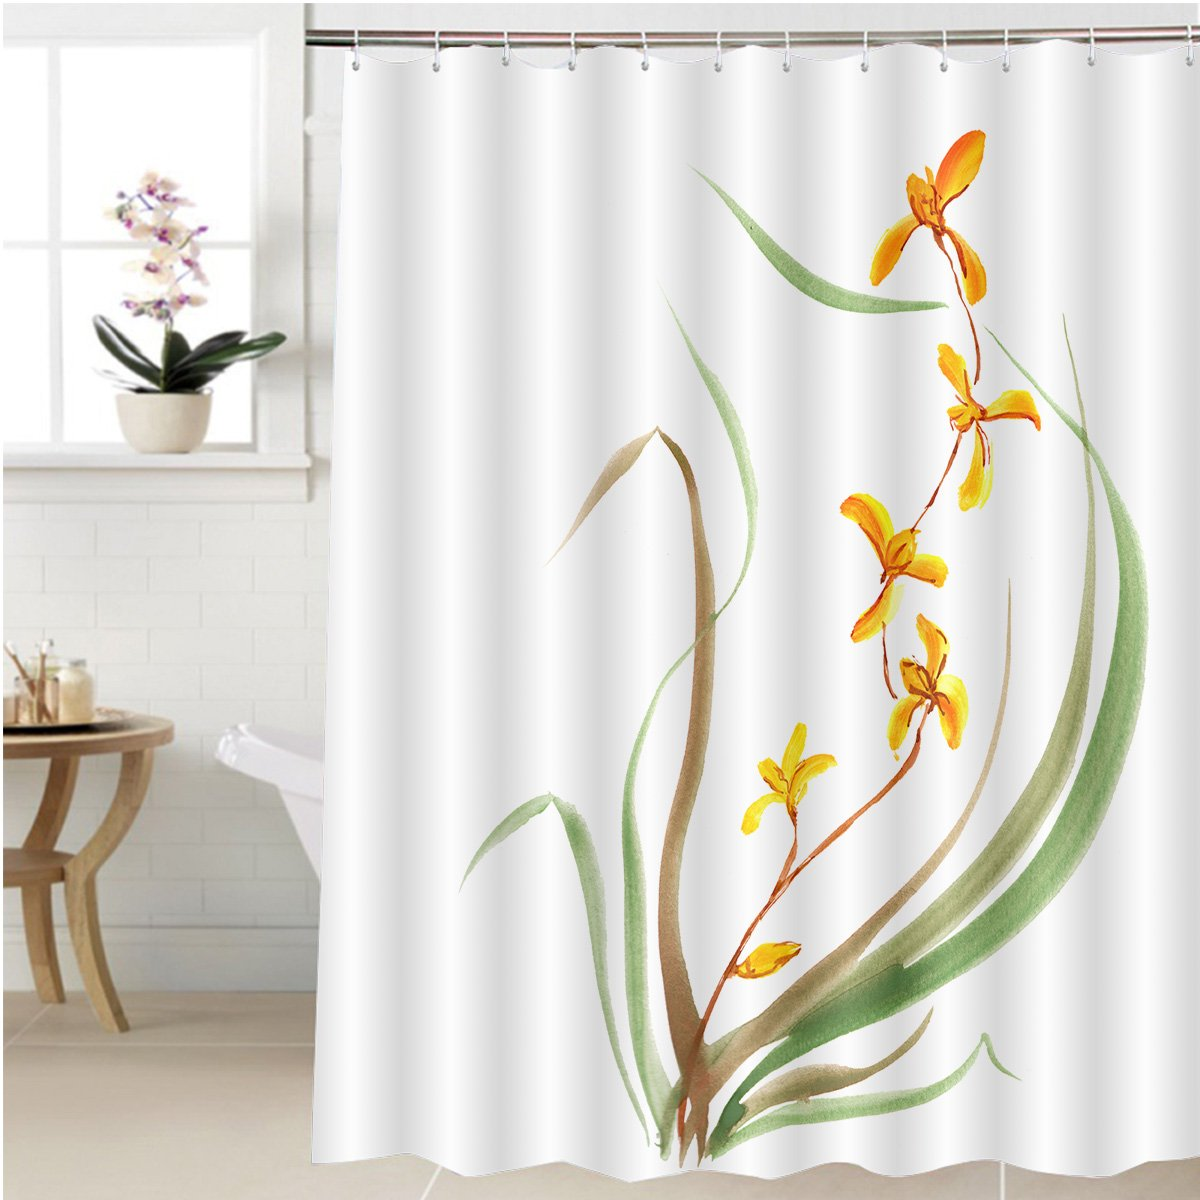 Amazon.com: Gzhihine Shower curtain orchid painted in gouache ...